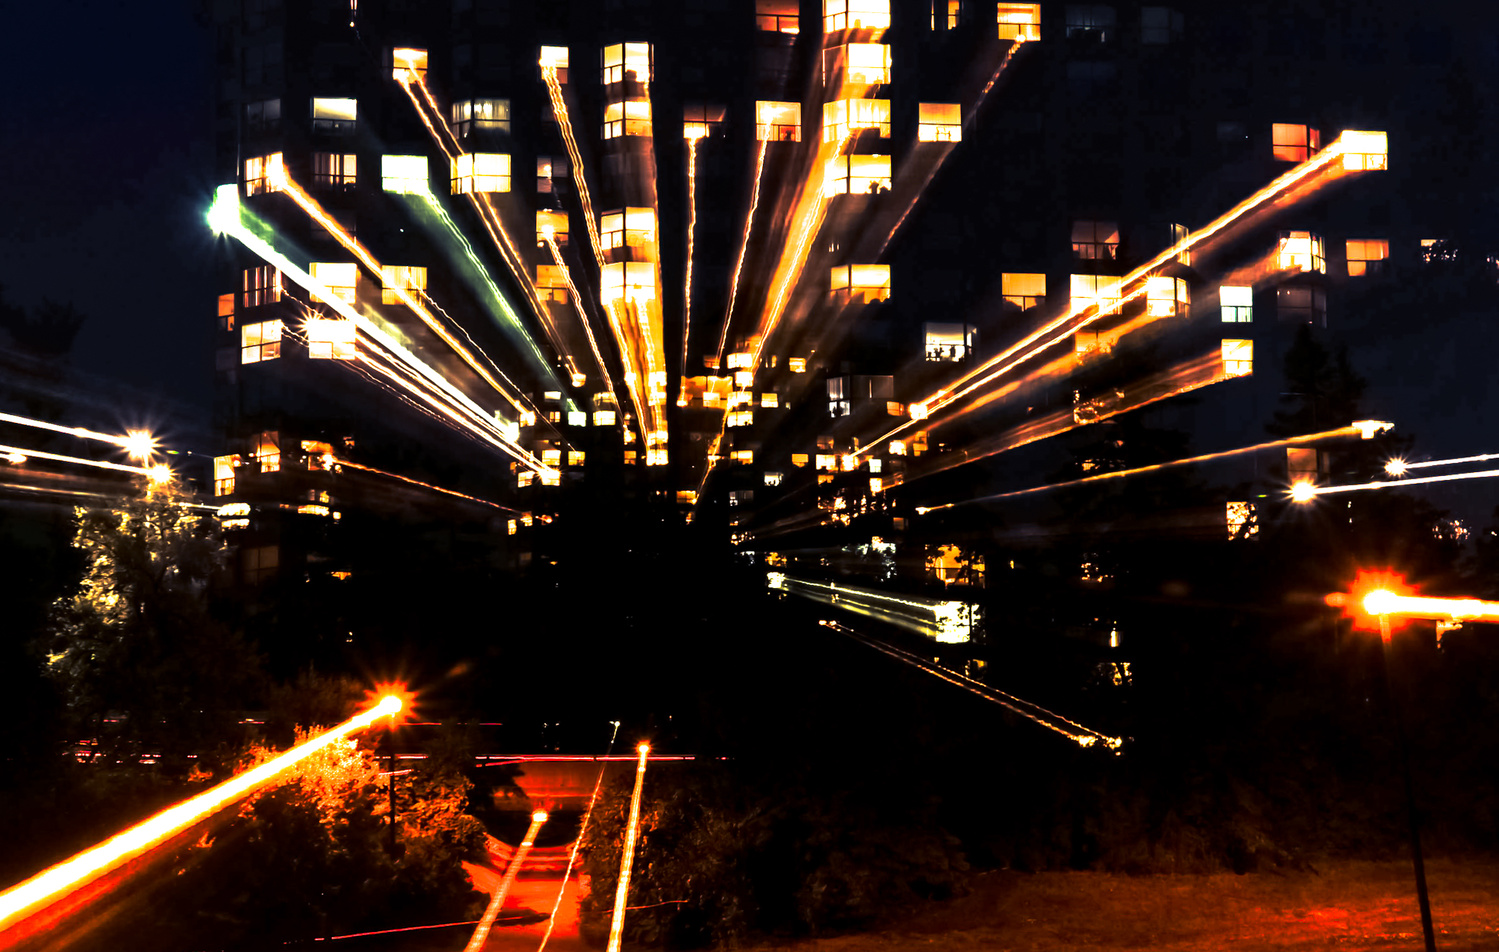 Highrise Zoom Burst at Night by Justin Powers